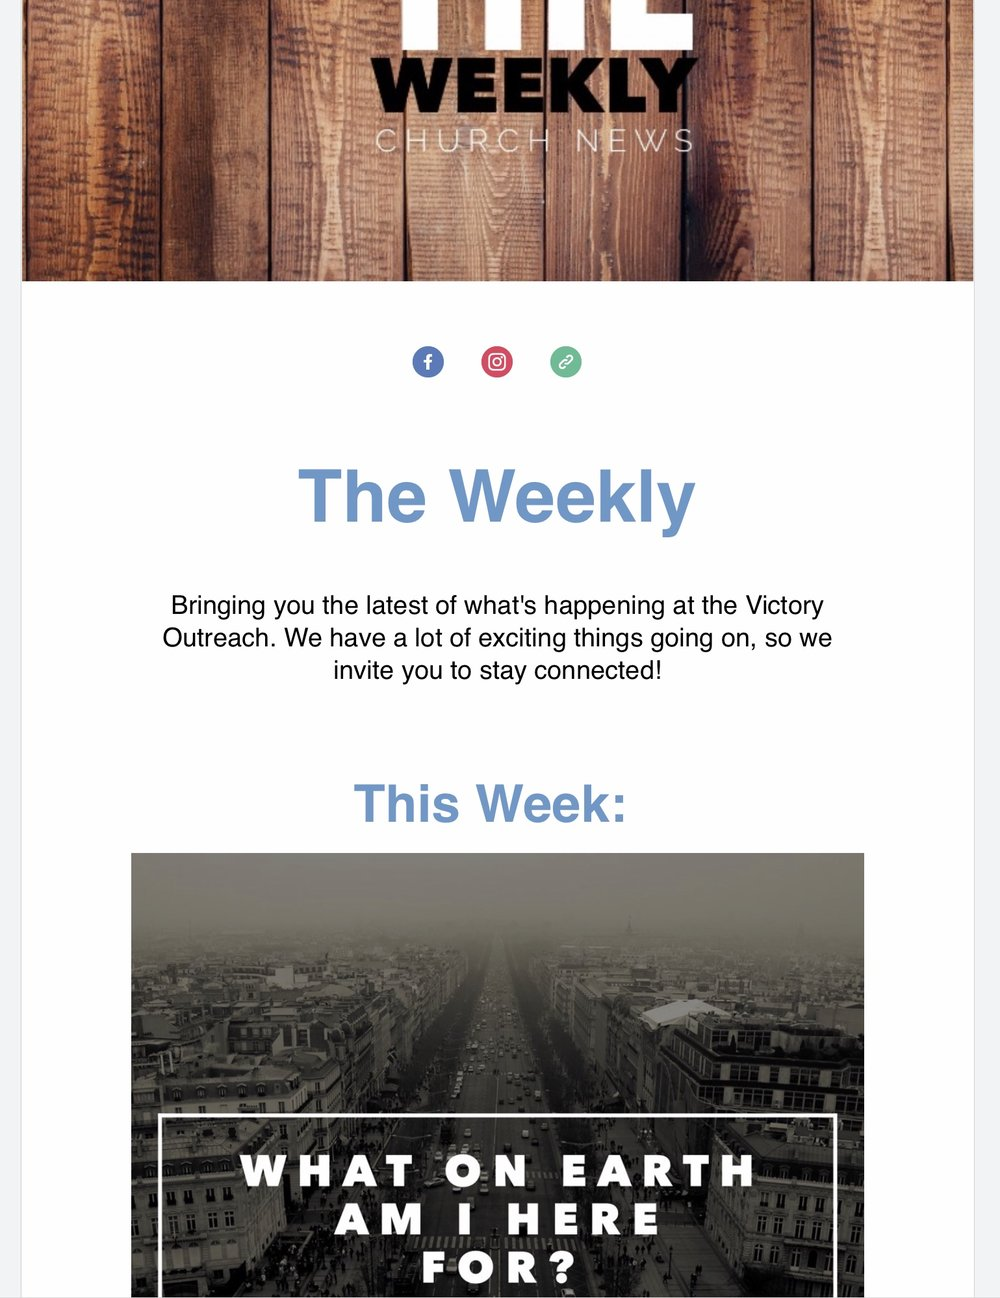 Stay connected - Click here for the weekly church news